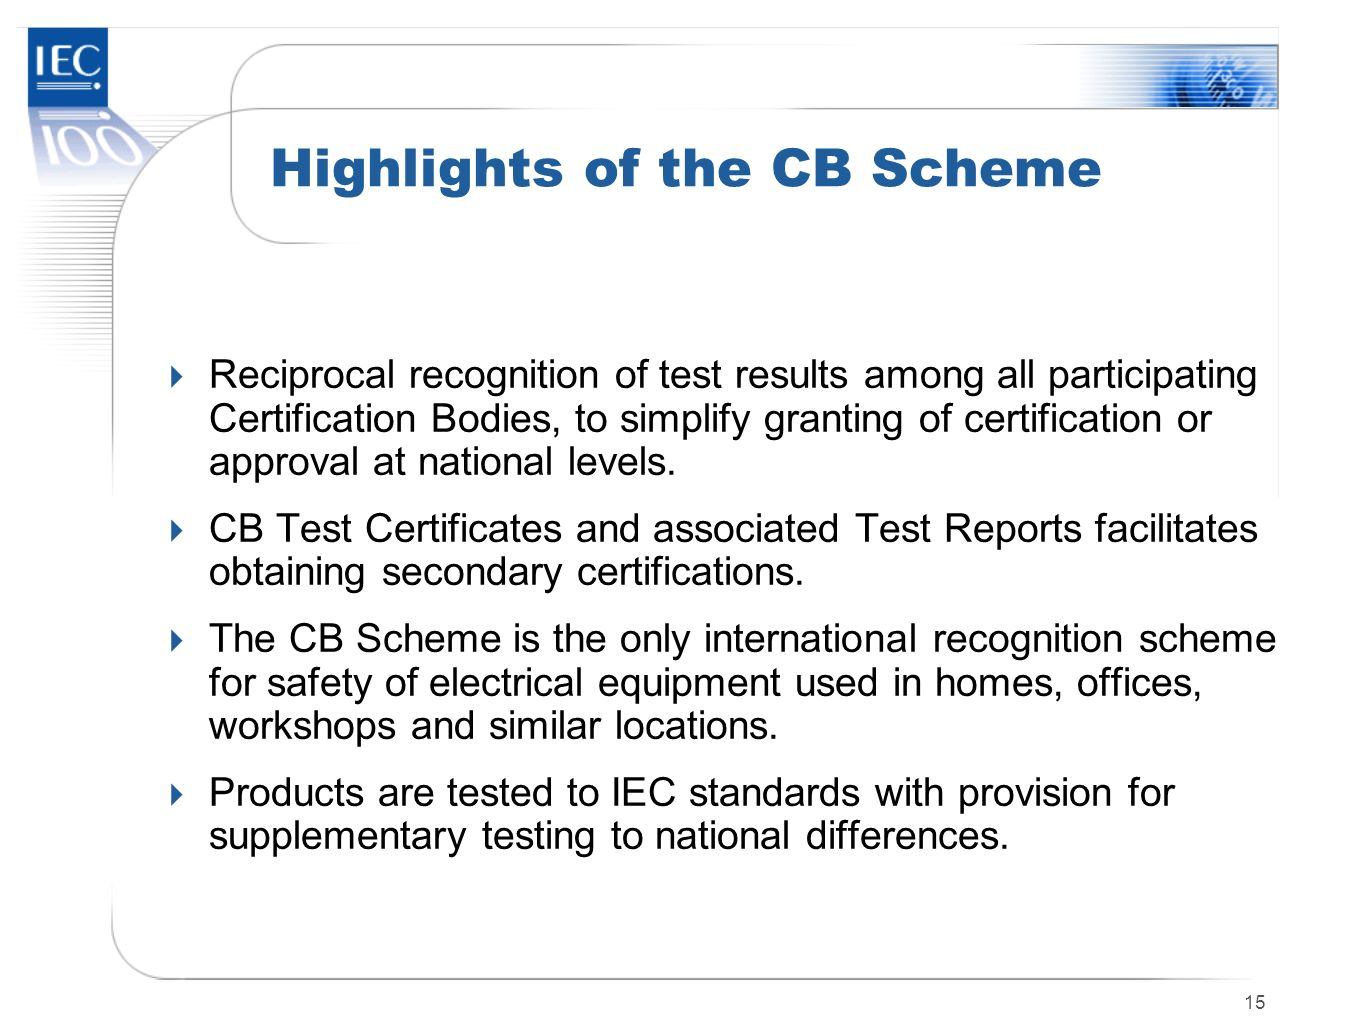 Highlights of the CB Scheme